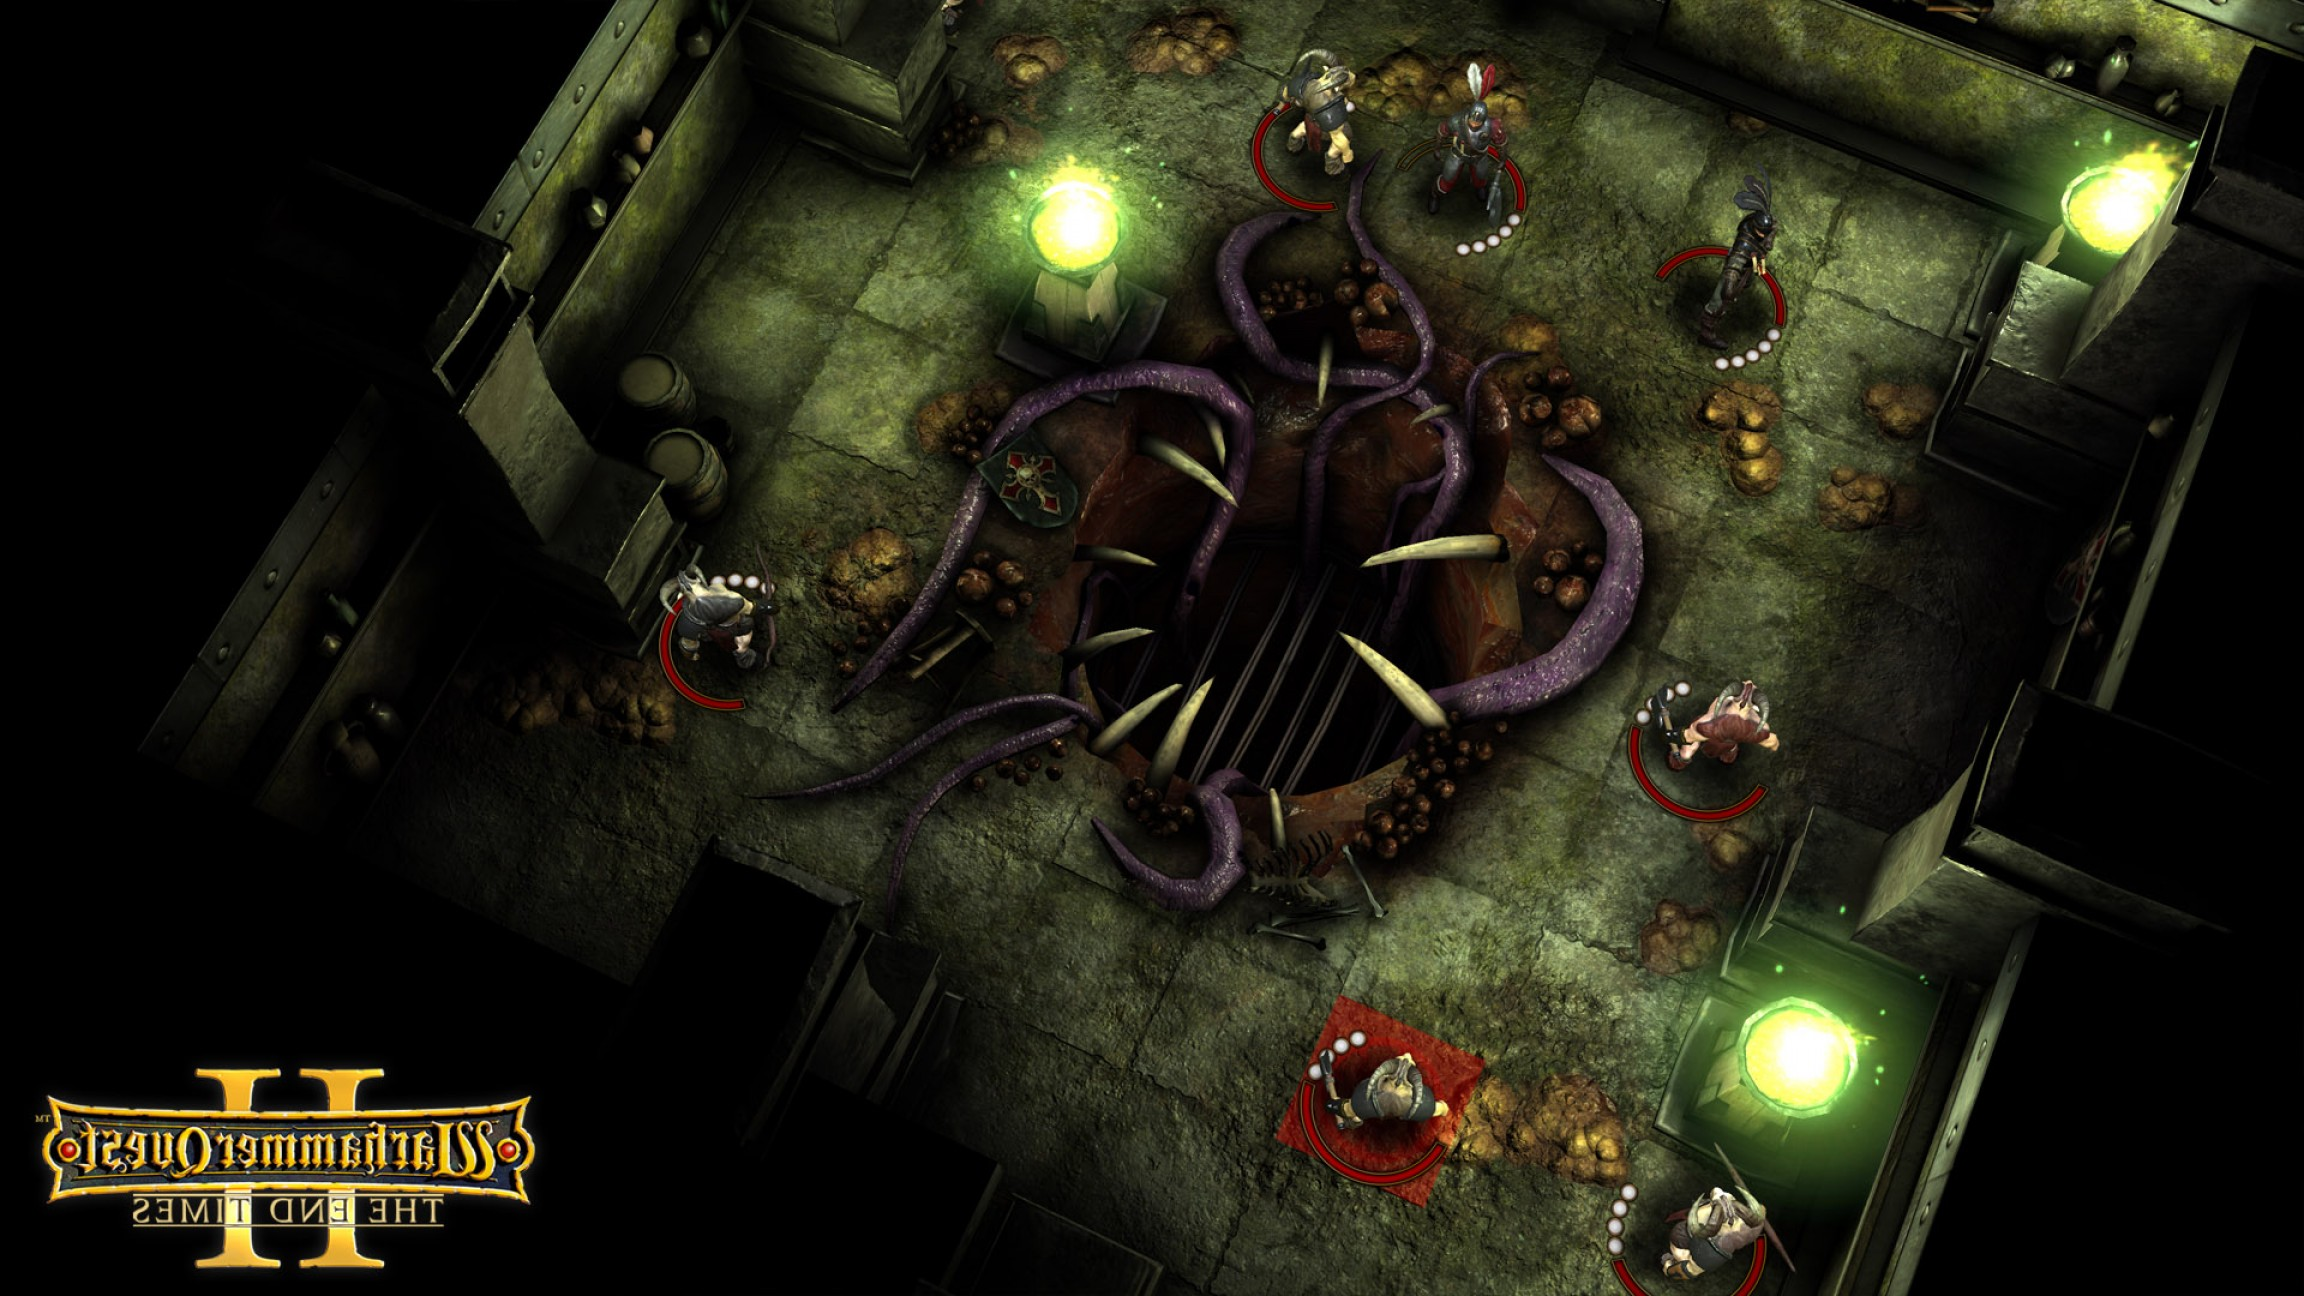 Vectorman PS2 Final: Warhammer Quest The End Times Announced